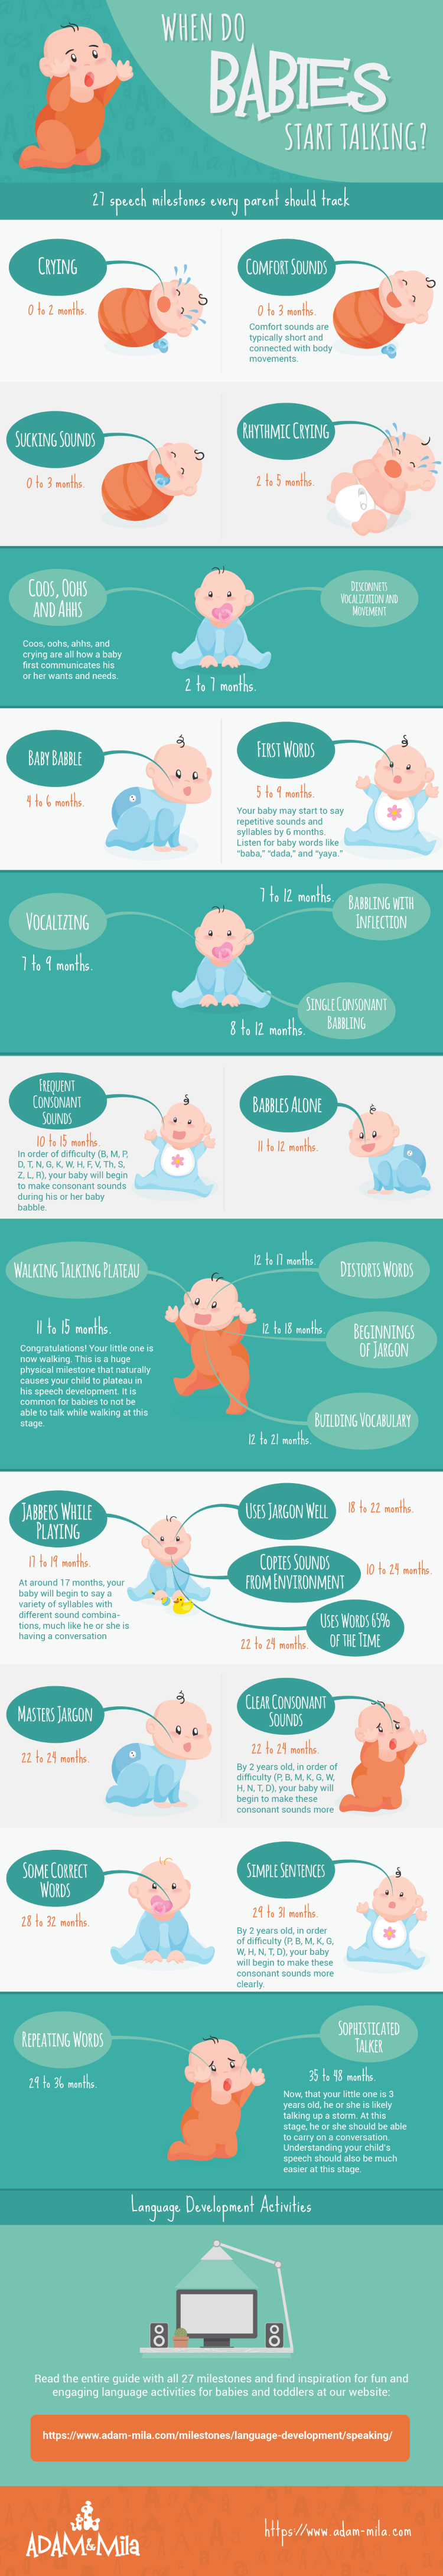 when do babies start talking - 27 speech development milestones